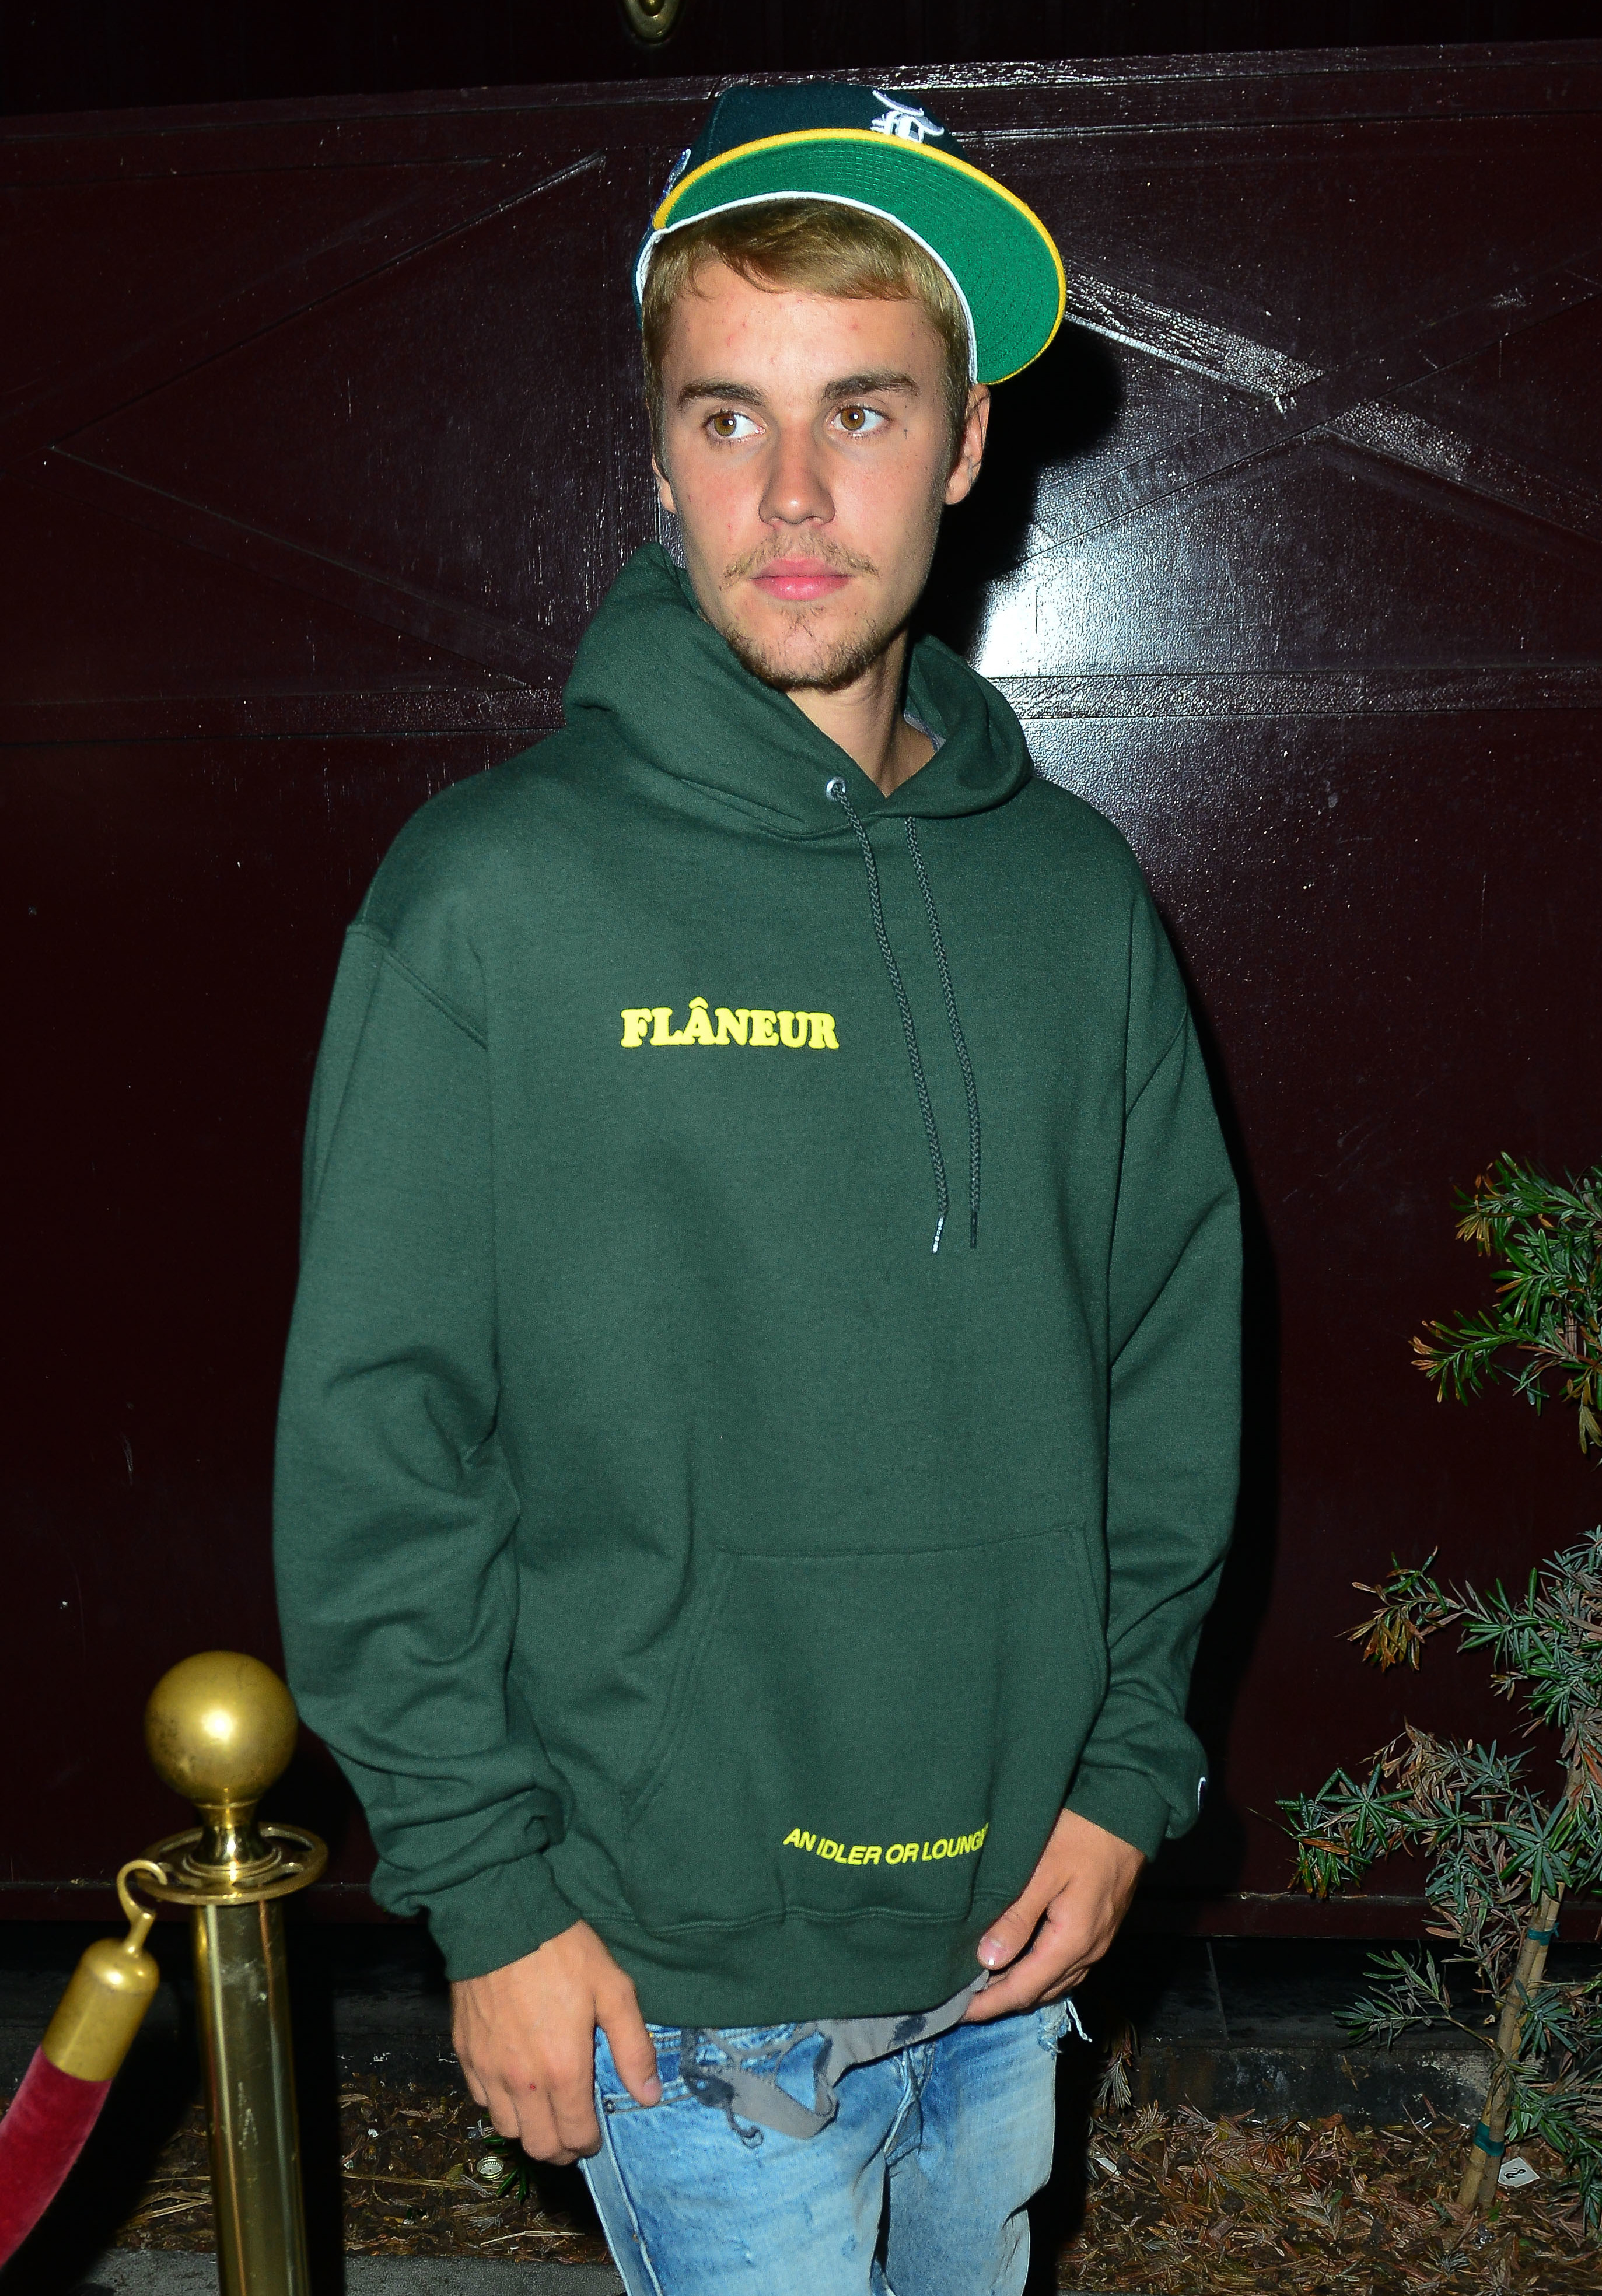 Justin Bieber leaves The Peppermint Club after attending a private church event                                    Featuring: Justin Bieber                  Where: Los Angeles, California, United States                  When: 06 Aug 2017                  Credit: WENN.com